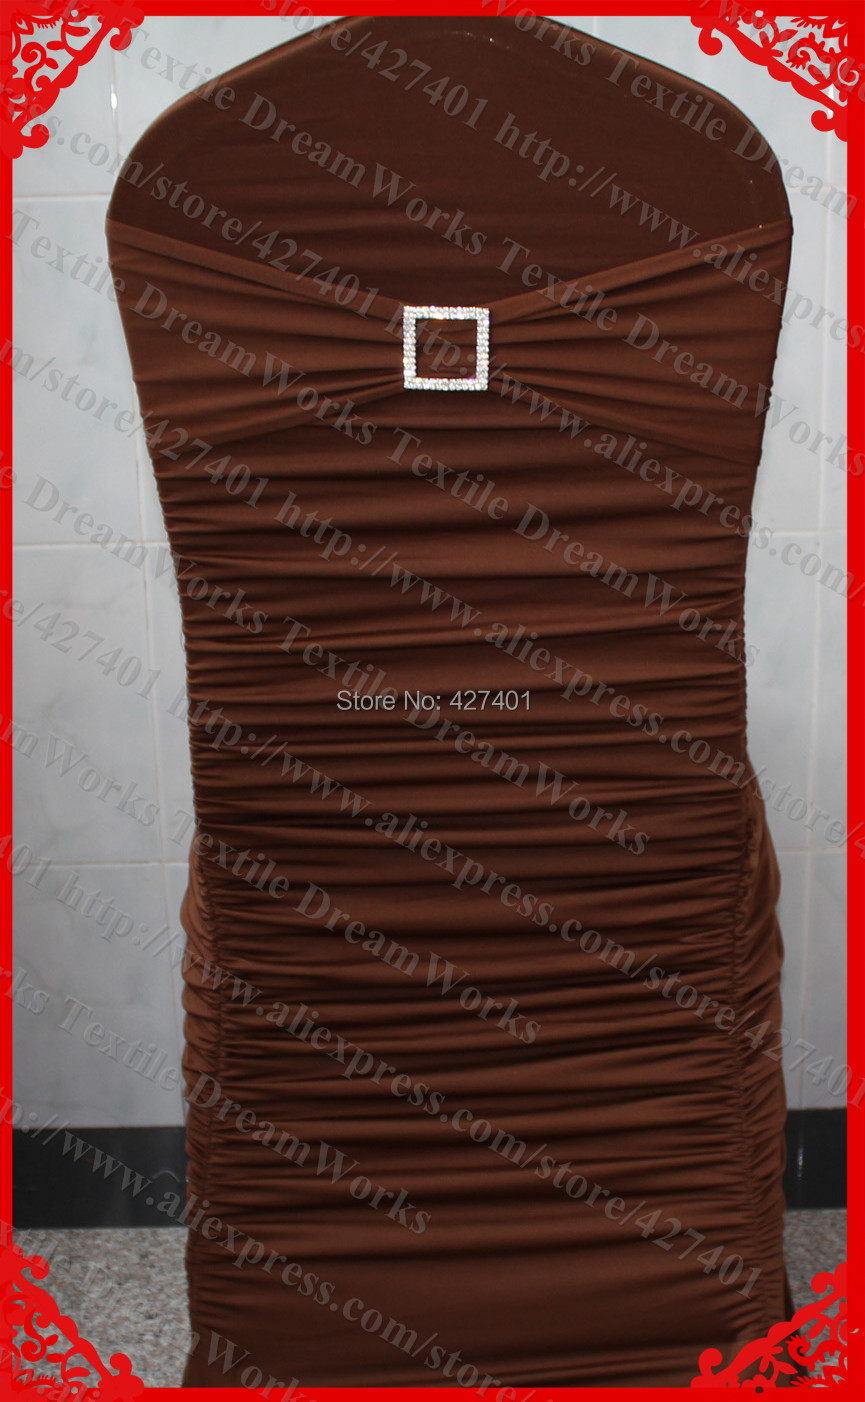 NO.31 Chocolate Brown Ruffled Lycra Chair Covers With Band/Sash&Square Diamond Buckle&Pin For Wedding  Banquet Home DecorationNO.31 Chocolate Brown Ruffled Lycra Chair Covers With Band/Sash&Square Diamond Buckle&Pin For Wedding  Banquet Home Decoration